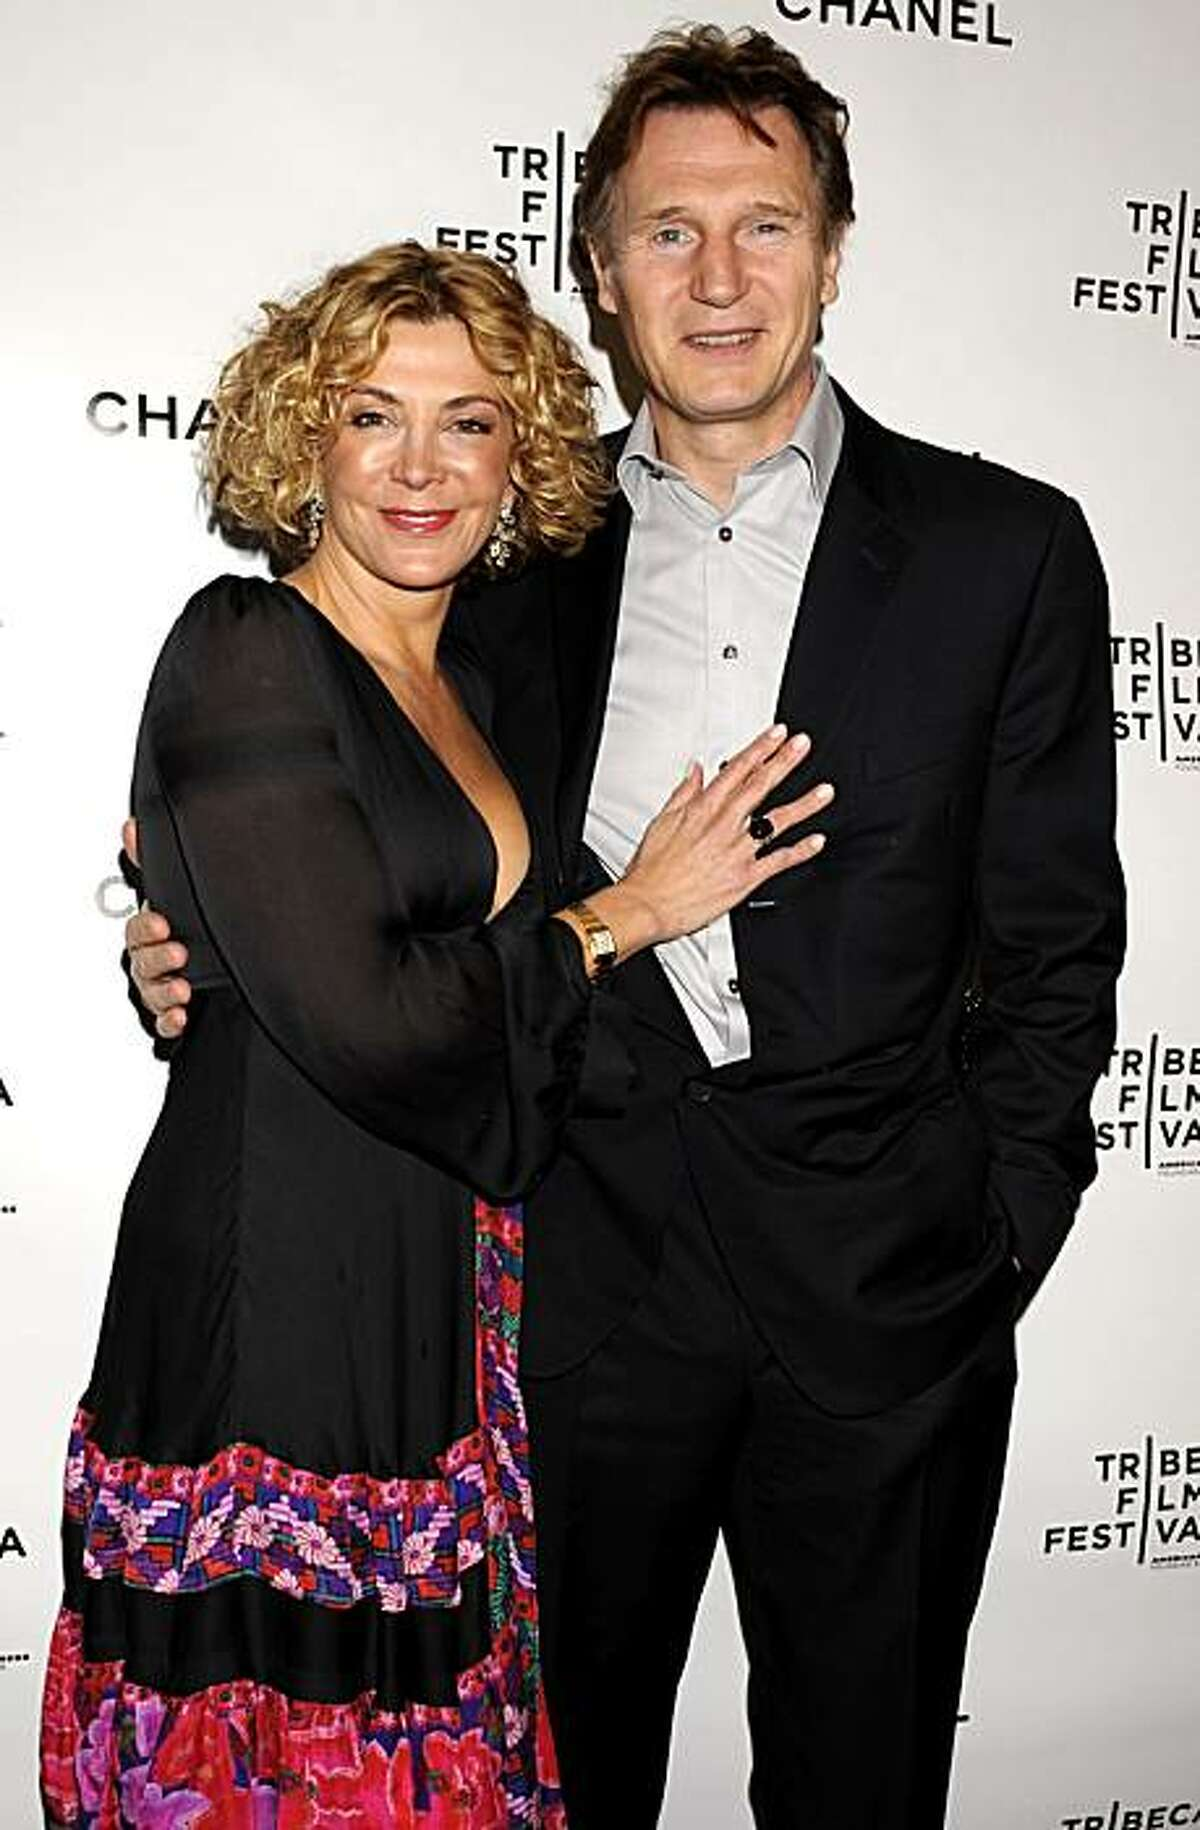 ** FILE ** In this April 28, 2008 file photo, actors Natasha Richardson, left, and Liam Neeson arrive for the Third Annual Artists Dinner in New York. Richardson, 45, died Wednesday March 18, 2009 in New York after suffering an apparent head injury from a skiing accident in Canada on Monday. (AP Photo/Louis Lanzano, File)